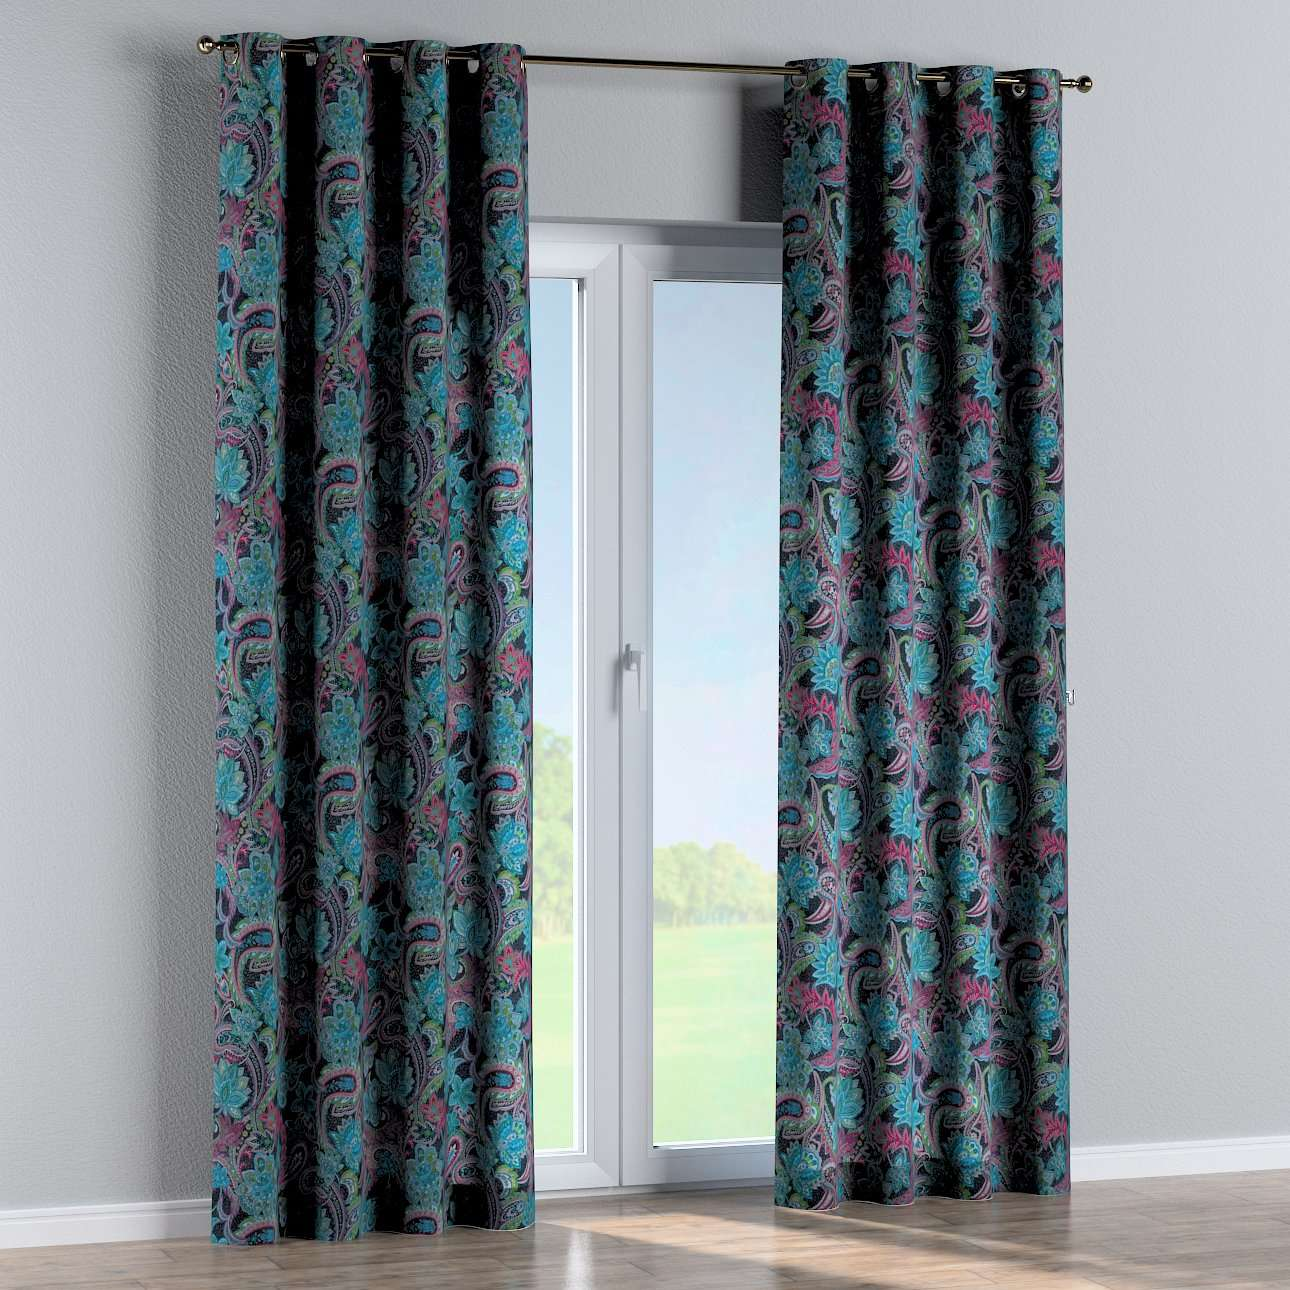 Eyelet curtains 130 × 260 cm (51 × 102 inch) in collection Velvet, fabric: 704-22